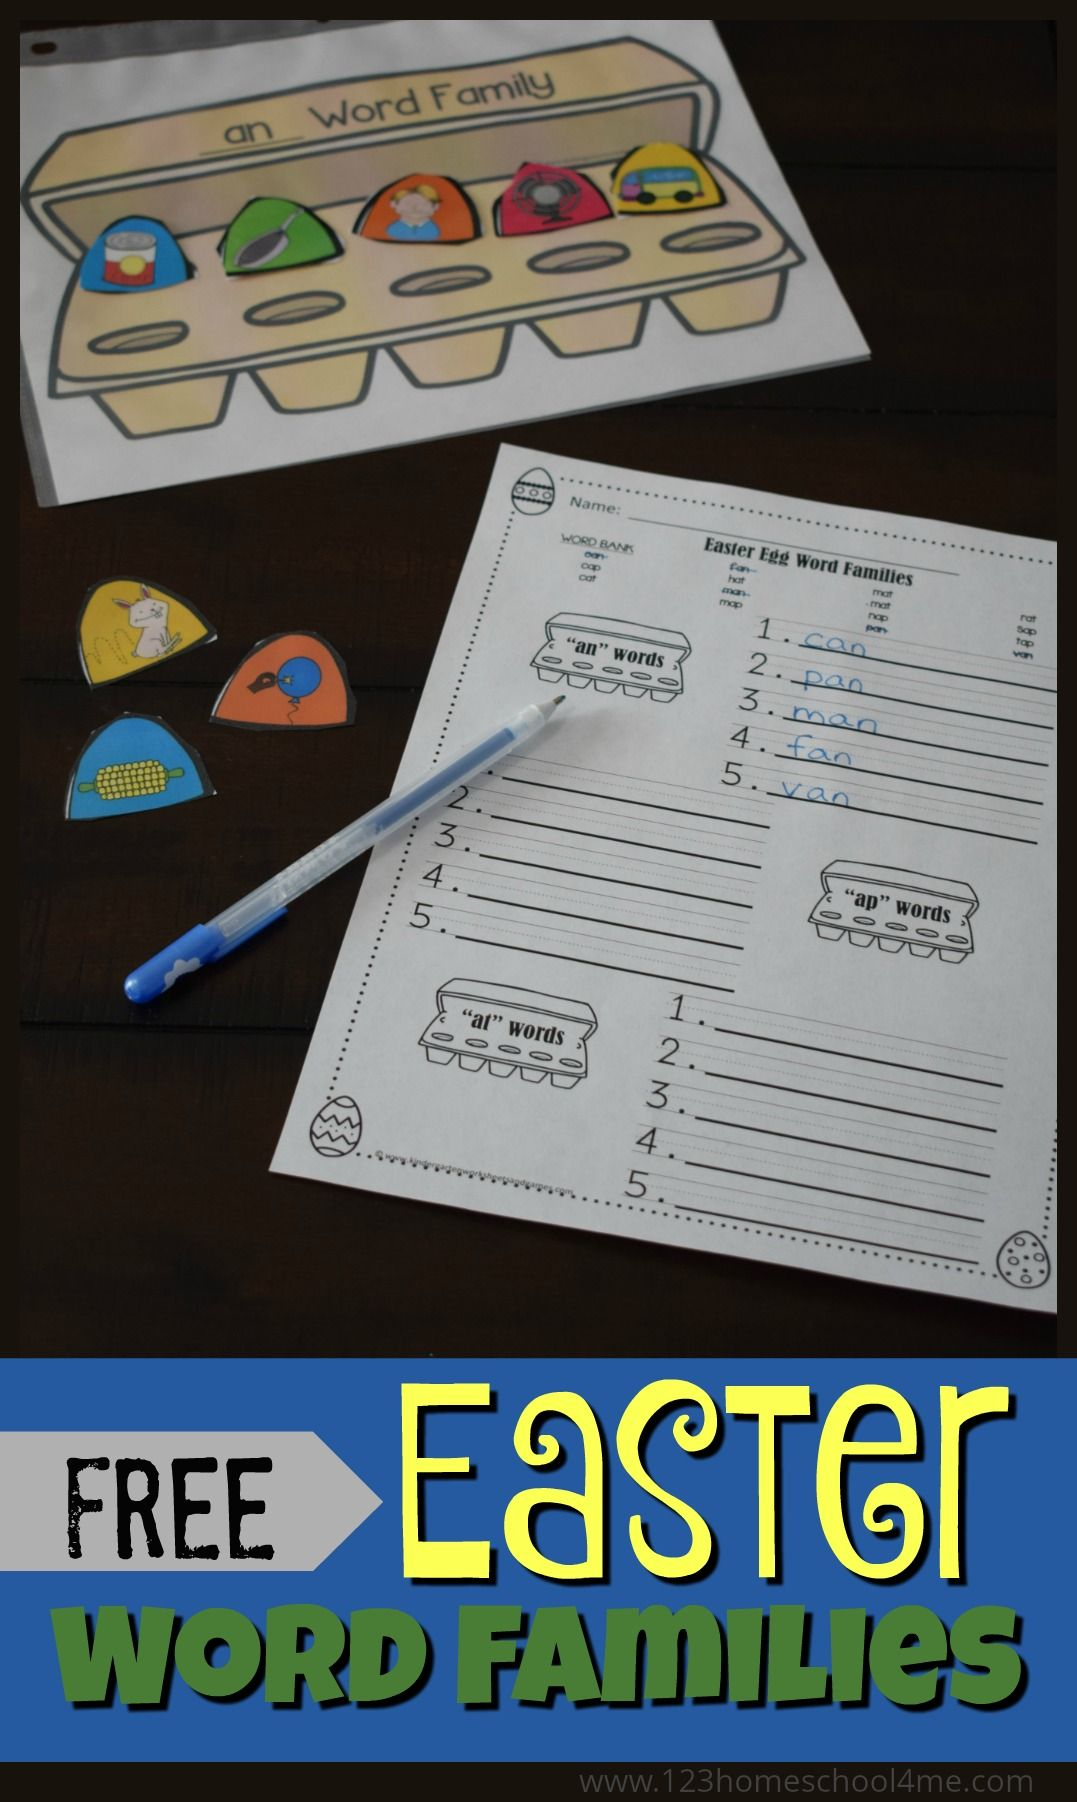 FREE Easter Word Families - fun hands on activity plus word family ...